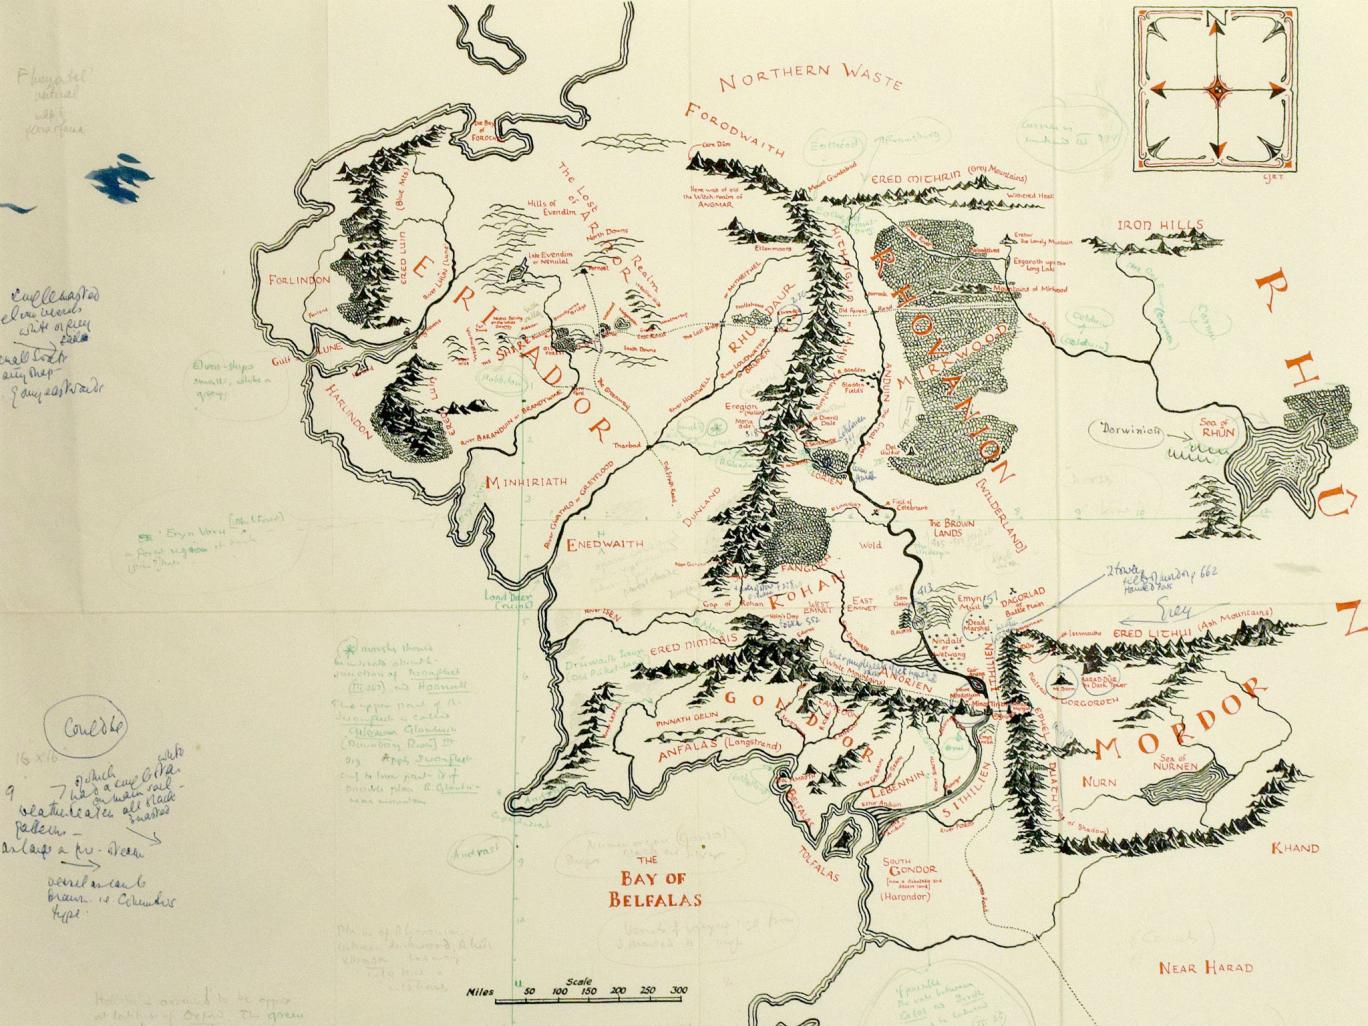 Annotated copy of J.R.R. Tolkien's map of Middle Earth